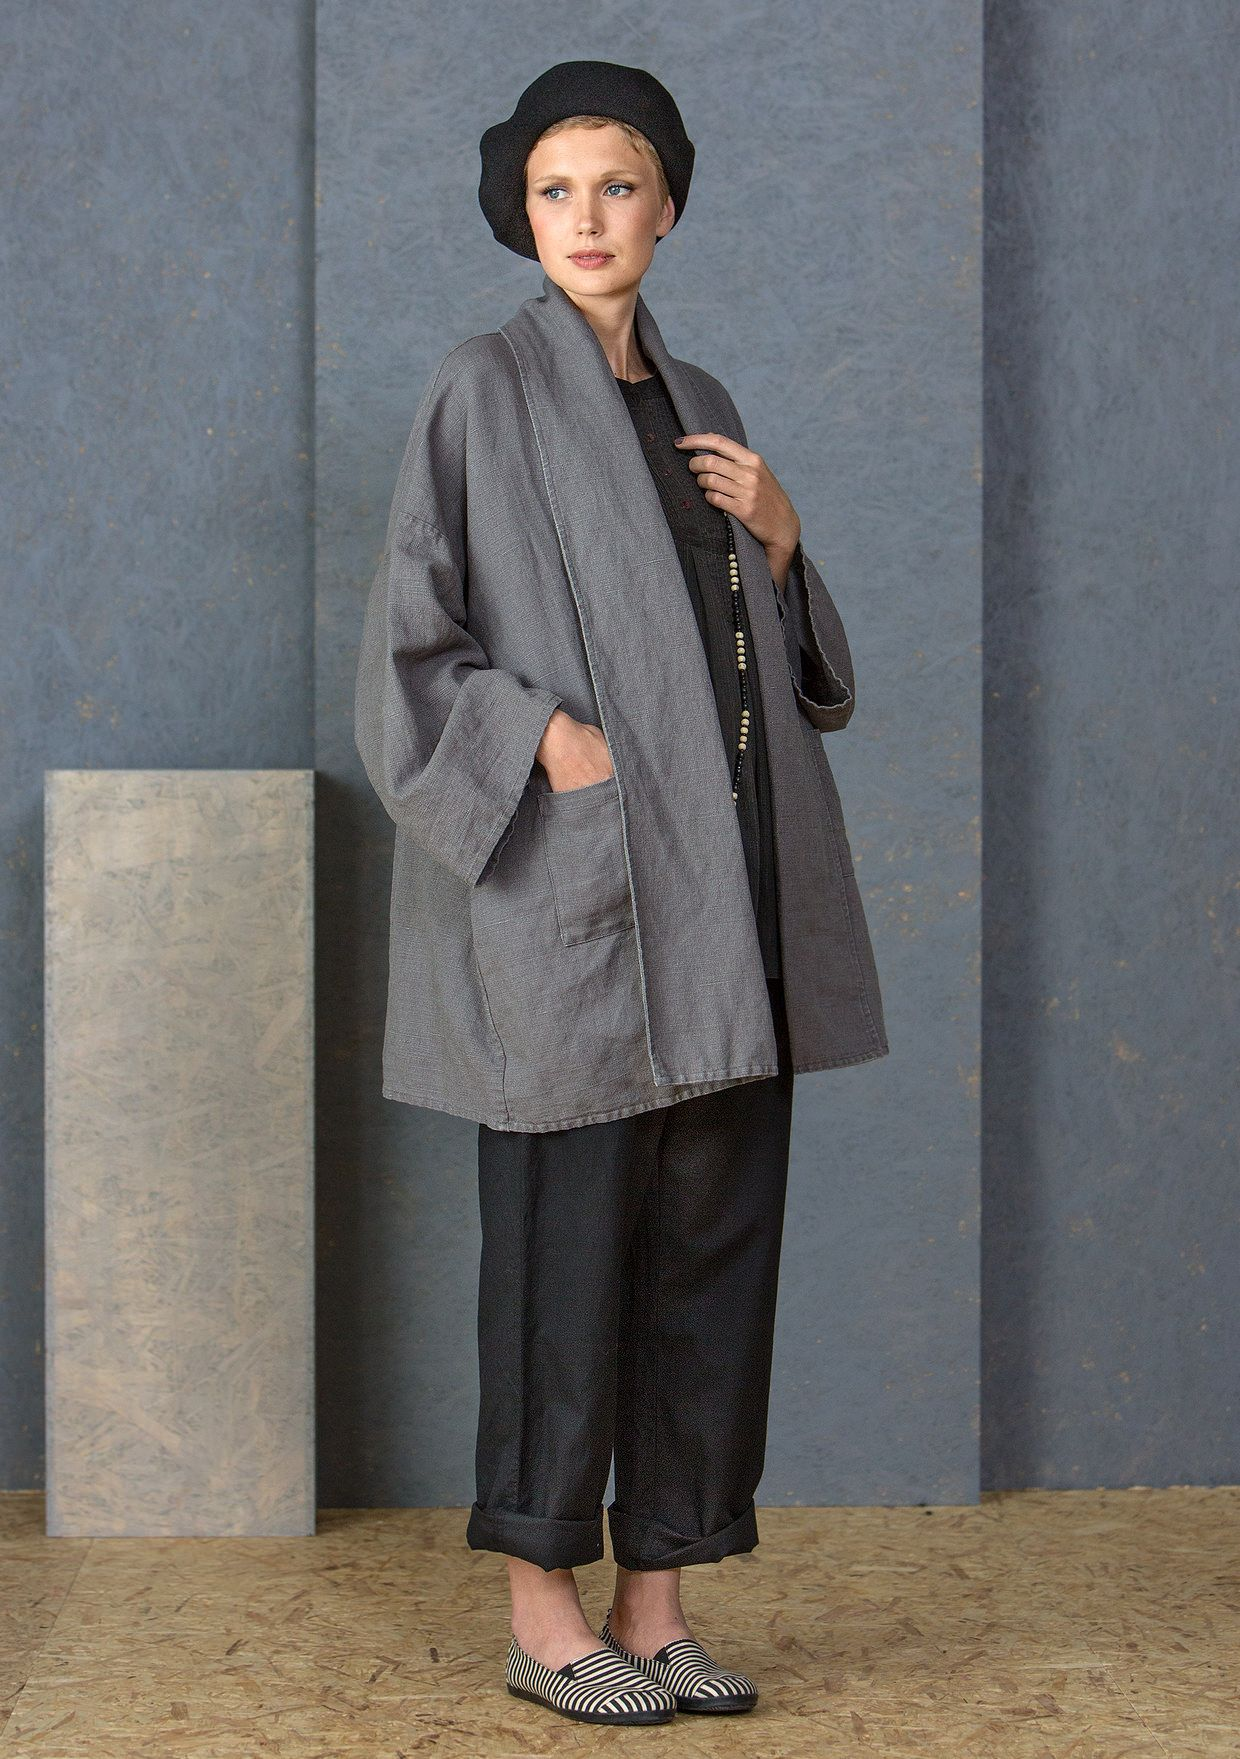 6e4f2d11c64d Coats & jackets – GUDRUN SJÖDÉN – Webshop, mail order and boutiques |  Colorful clothes and home textiles in natural materials.